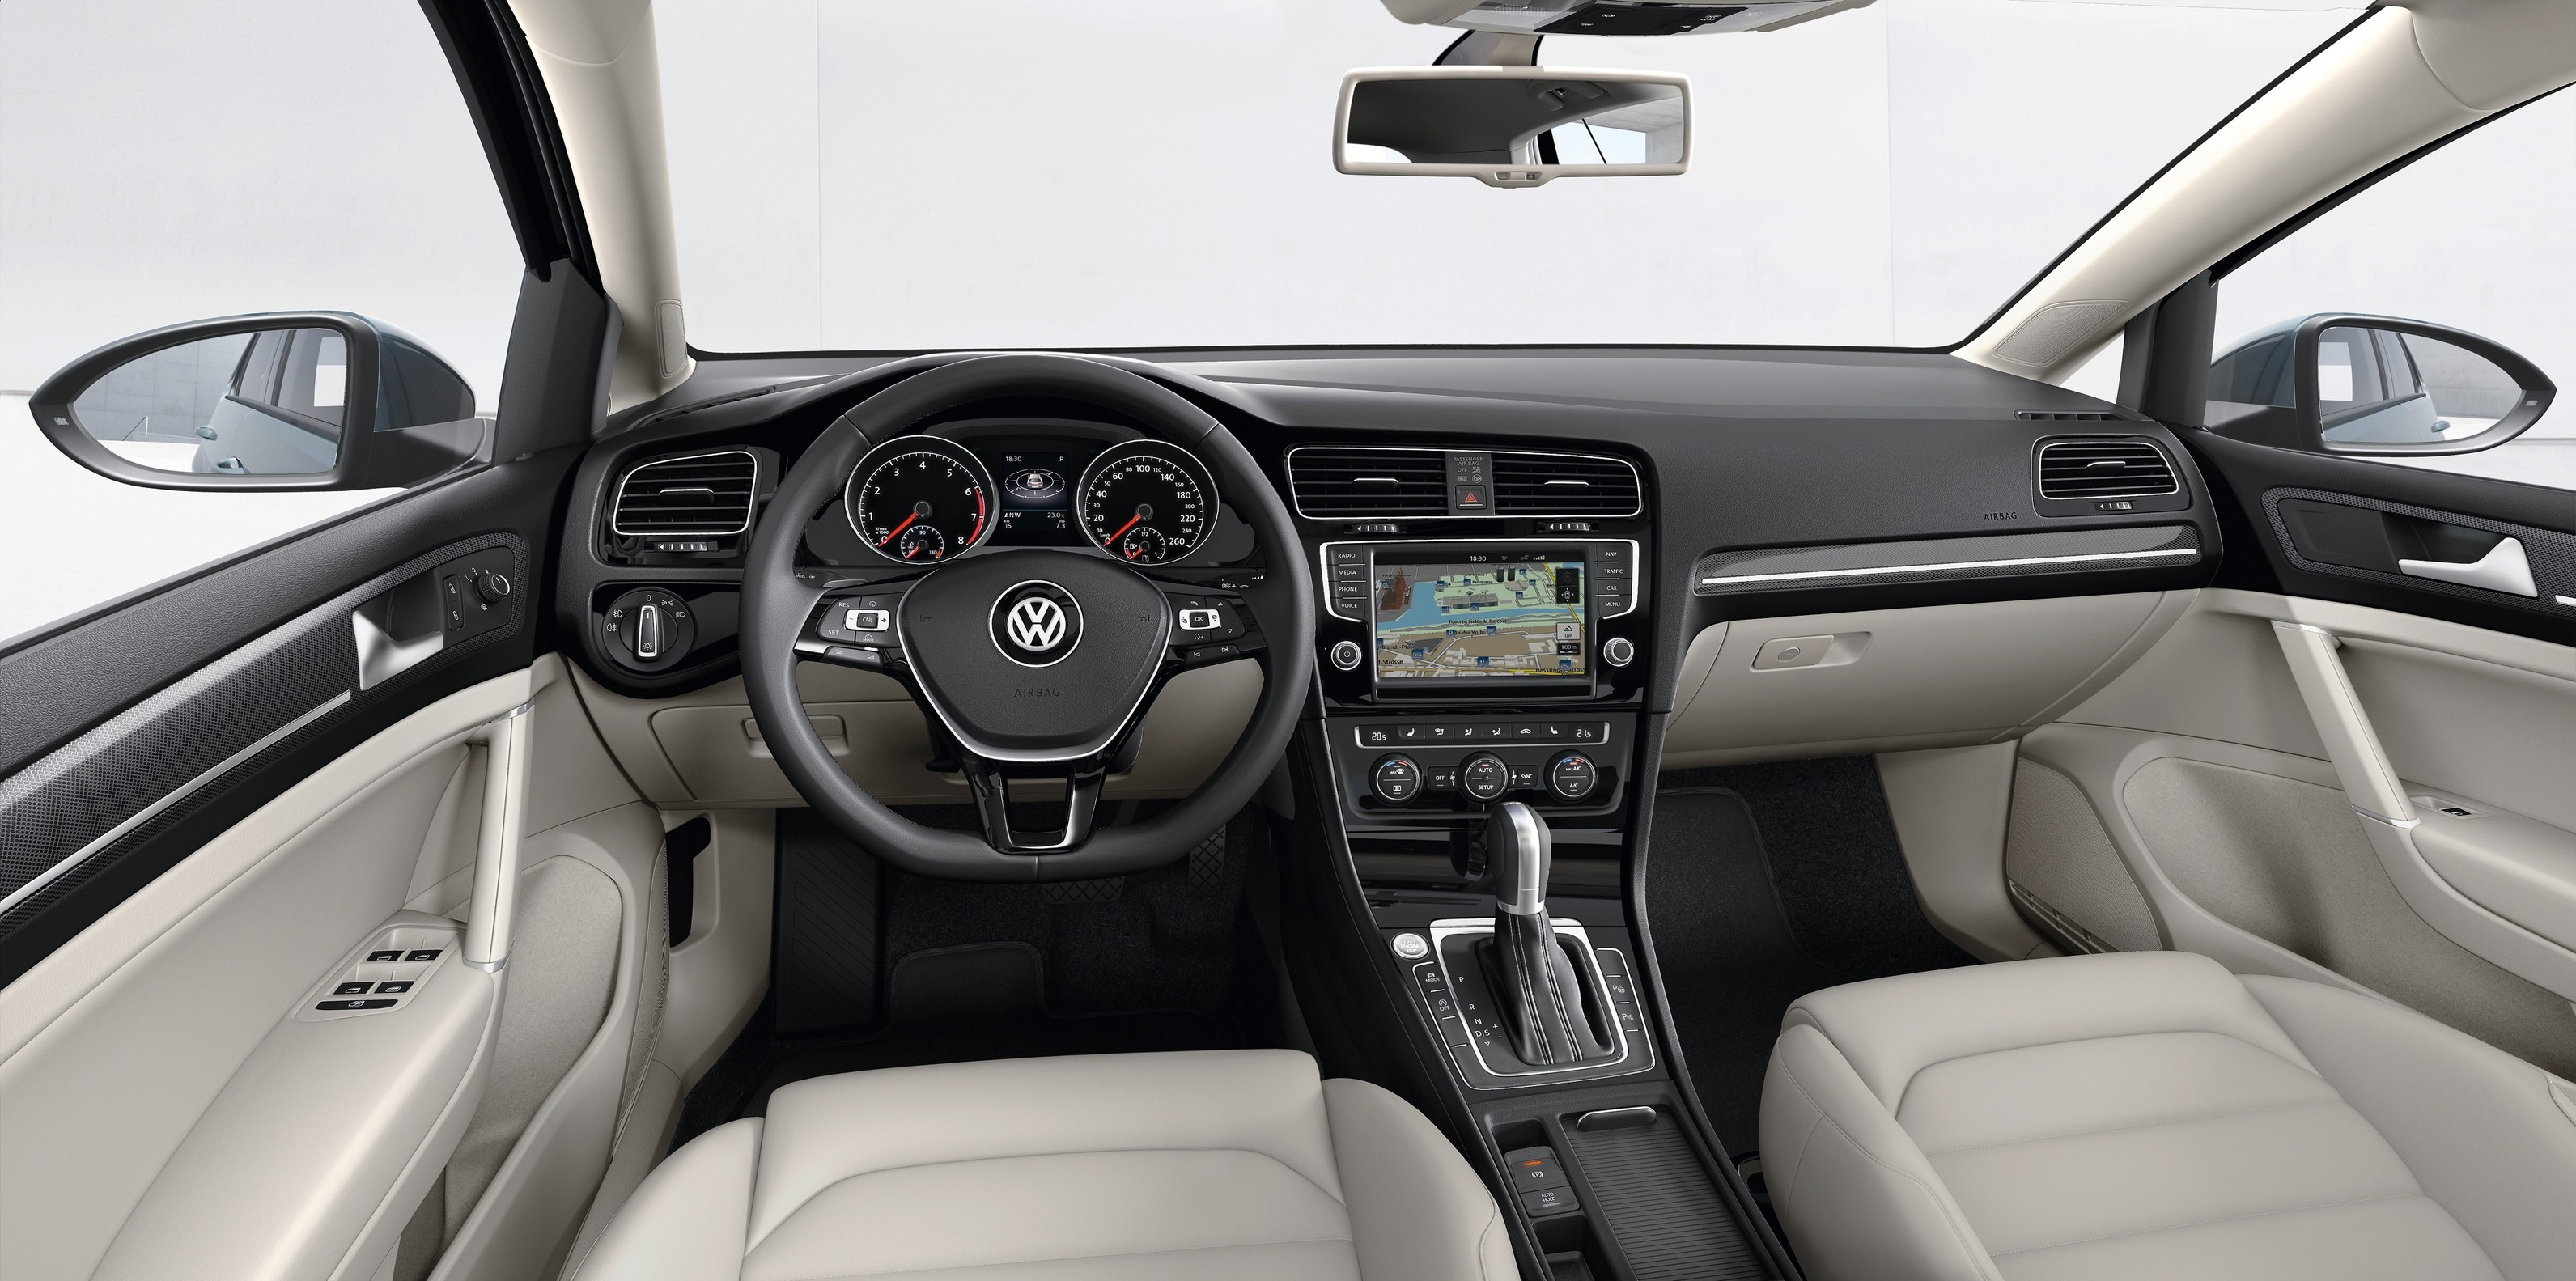 fiche technique volkswagen golf auto titre. Black Bedroom Furniture Sets. Home Design Ideas